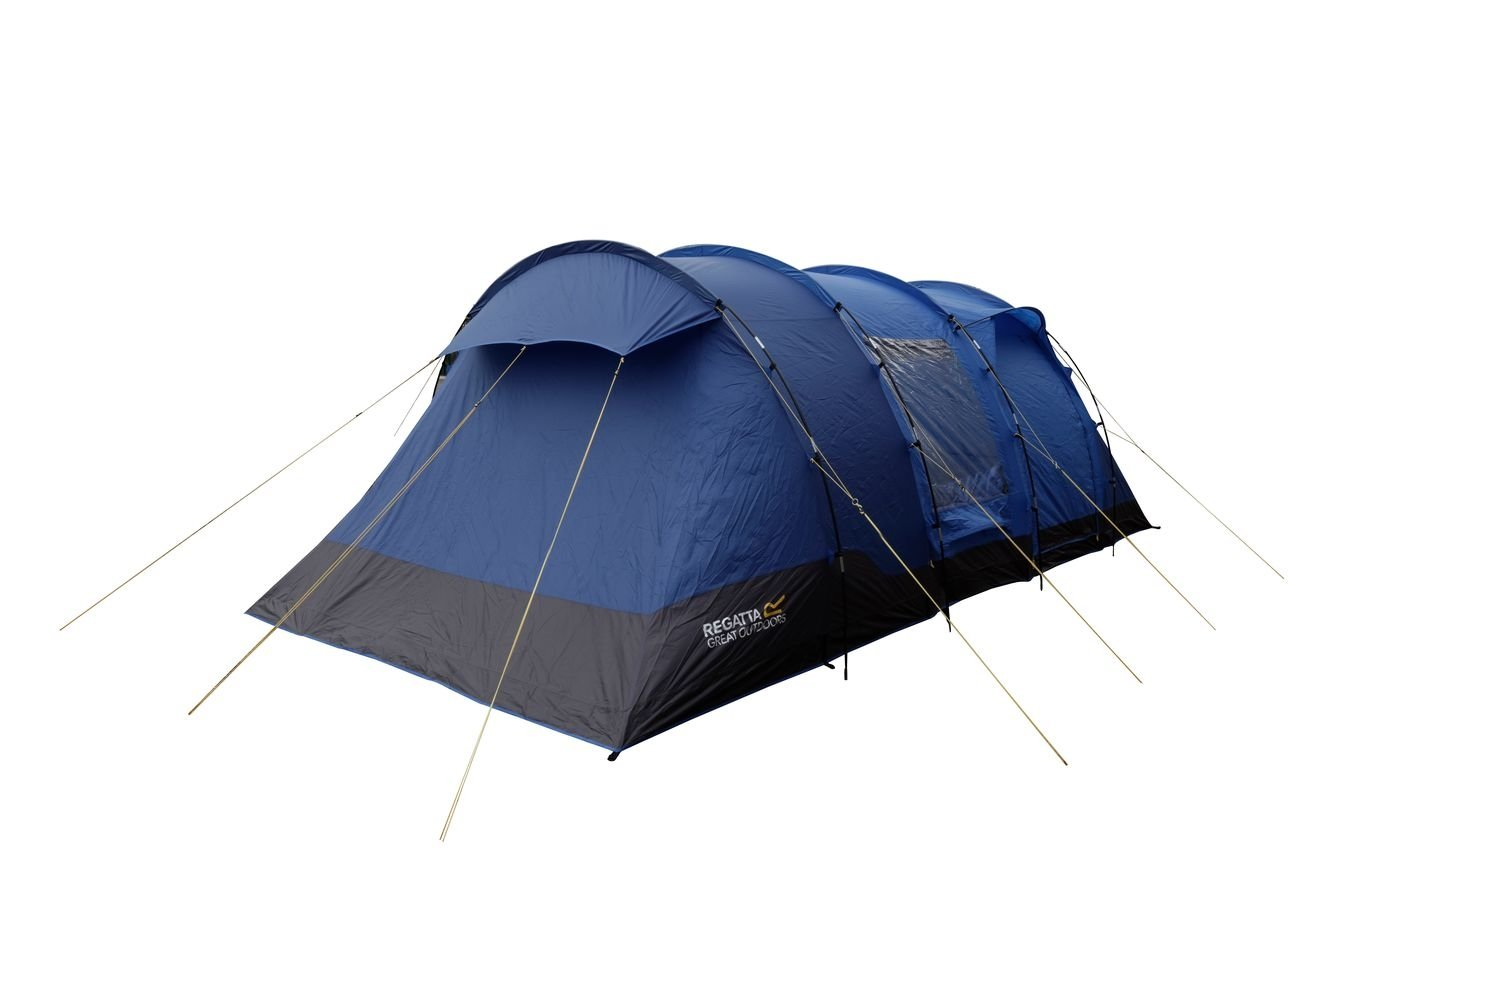 Regatta Karuna Vis-a Vis 6 Man Family Tunnel Tent Nautical/Laser Blue Spacious Darkened Bedroom 20 Minutes Pitching Time Waterproof Fire Retardant 6 Person ...  sc 1 st  Amazon UK & Regatta Karuna Vis-a Vis 6 Man Family Tunnel Tent Nautical/Laser ...